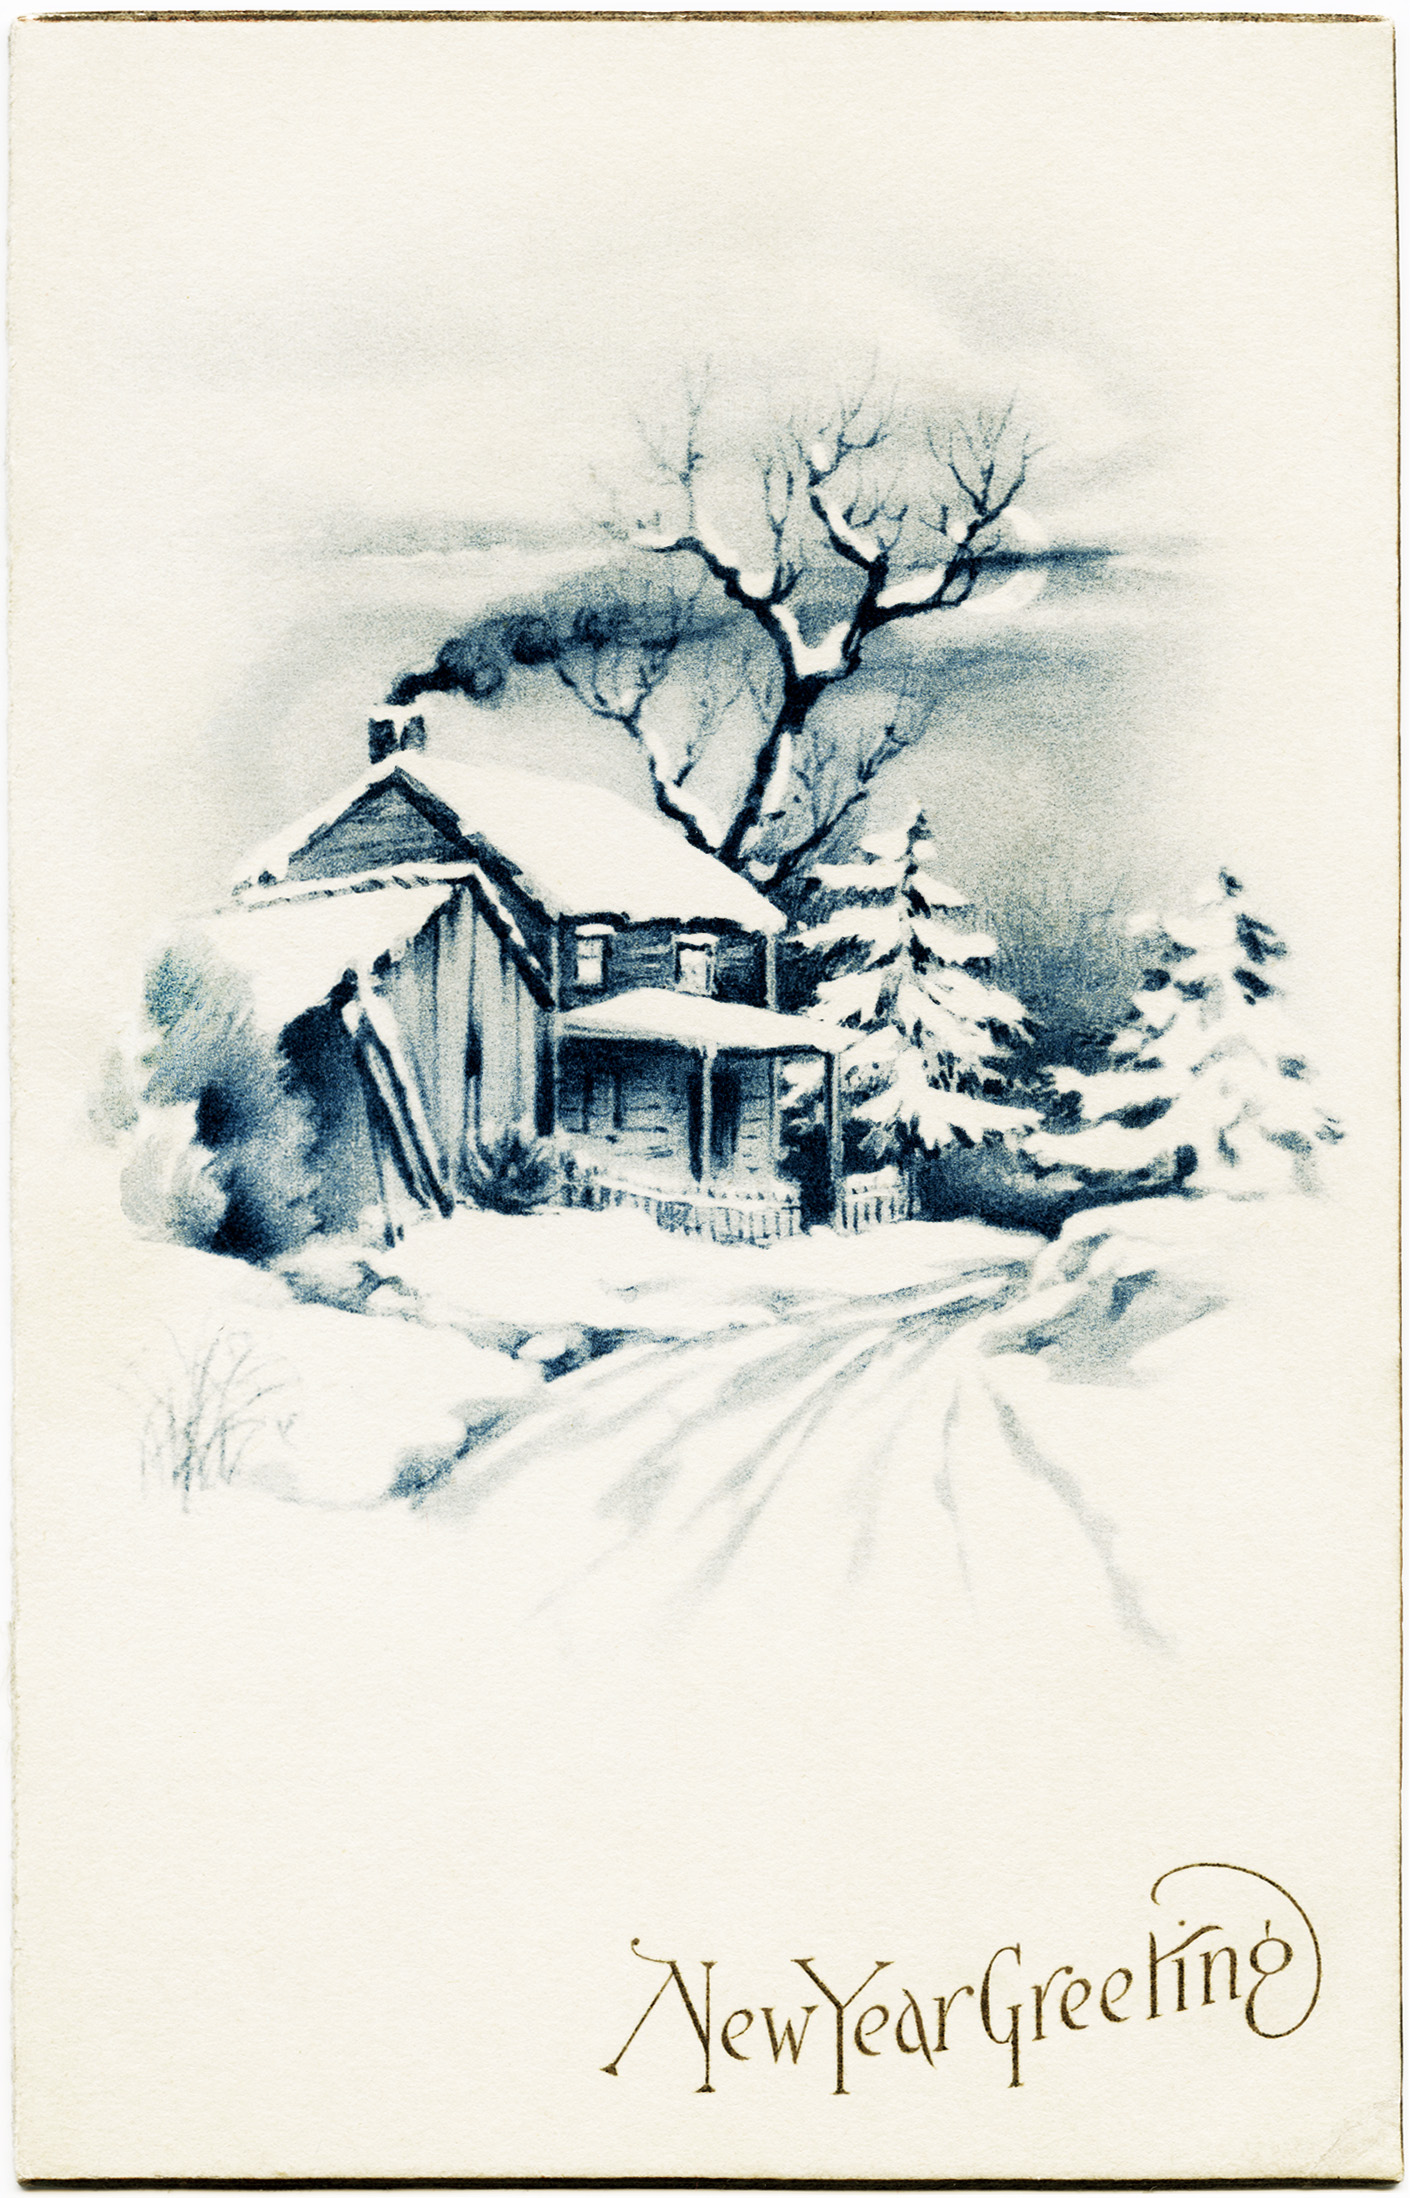 Snowy Winter Country Scene ~ Free Vintage Image | Old ...